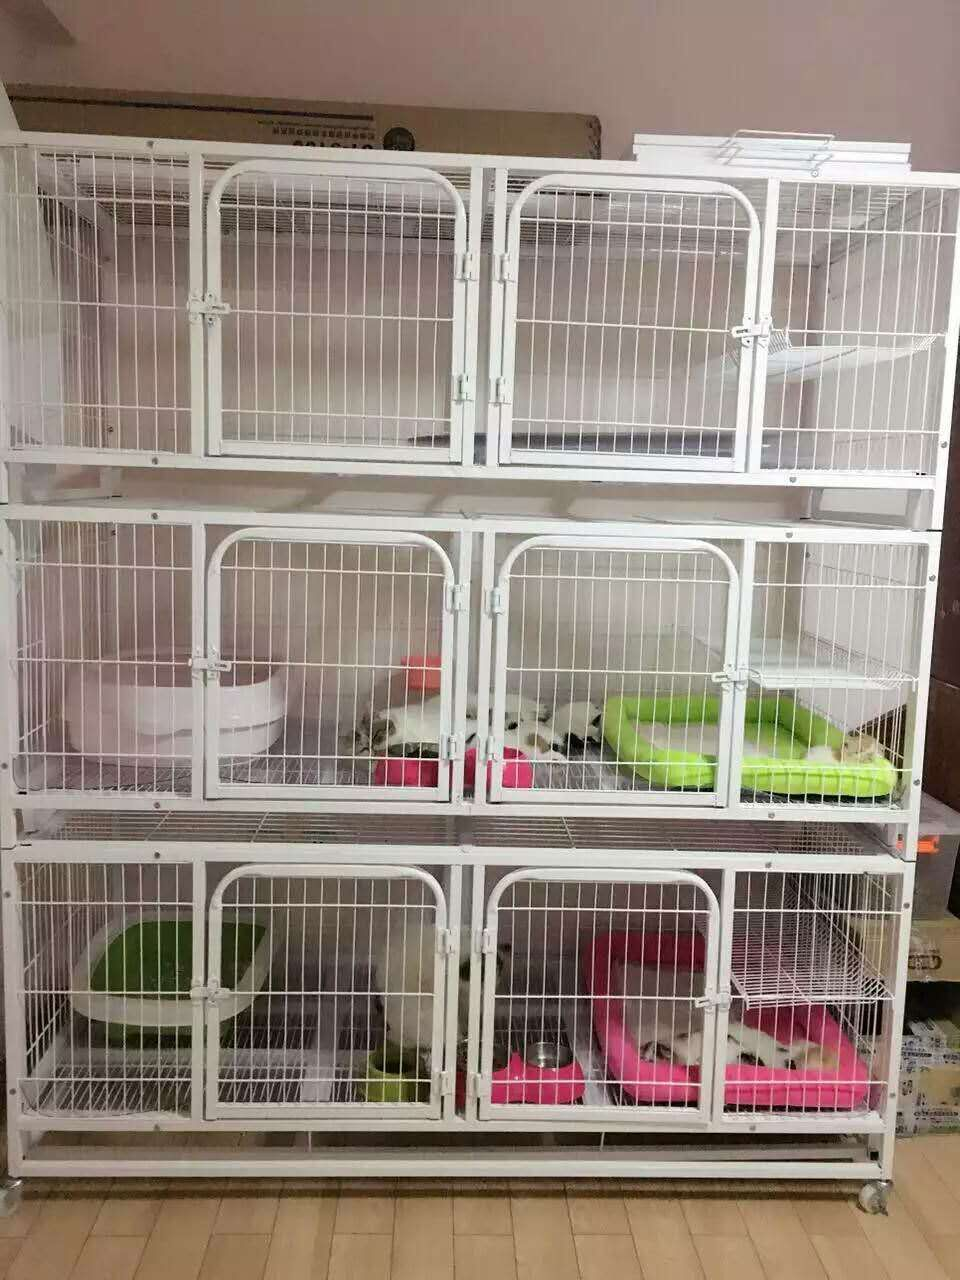 1 64 M Long Square Tube Cat Cage Door Three Large Breeding